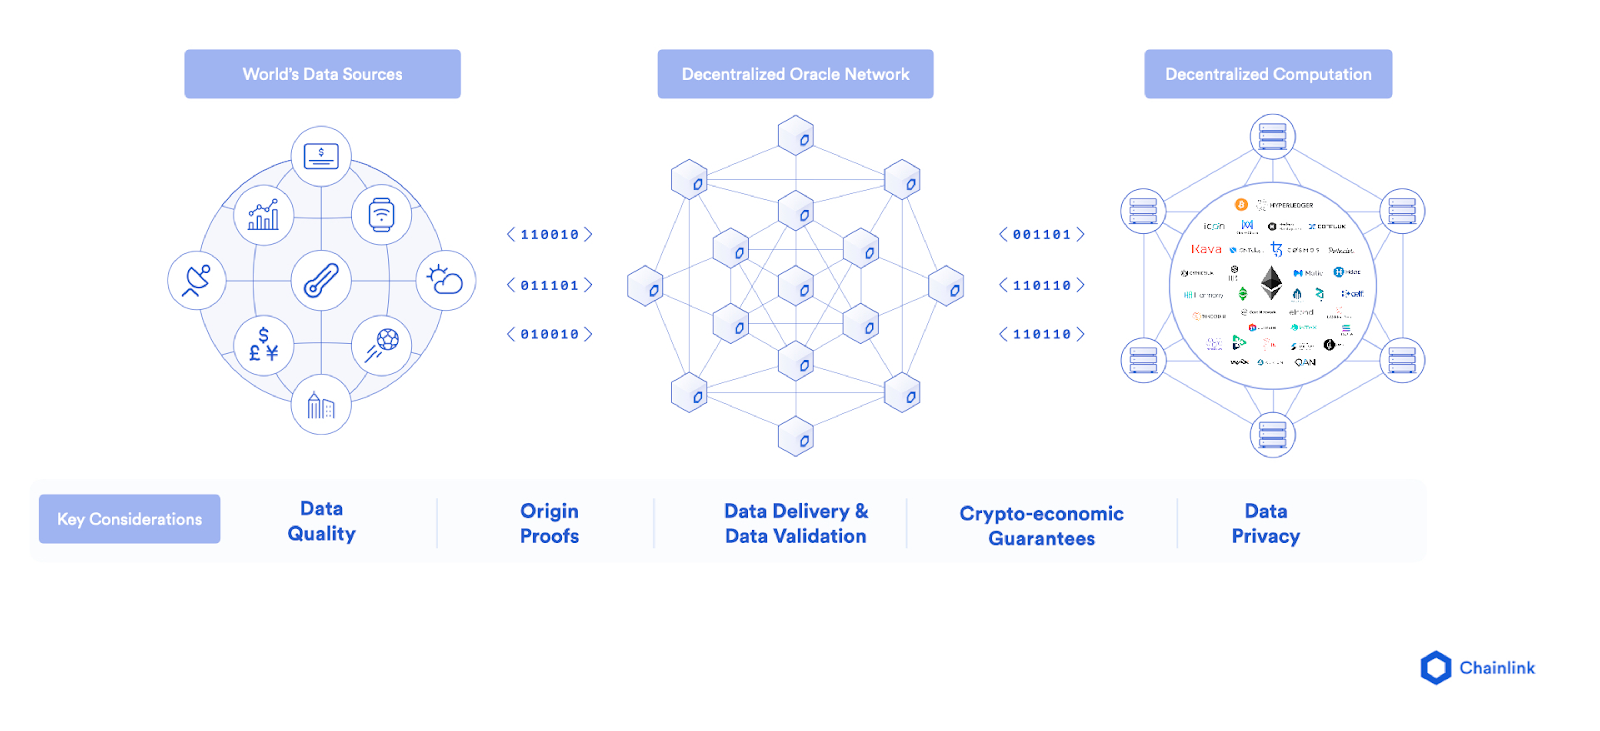 Chainlink features